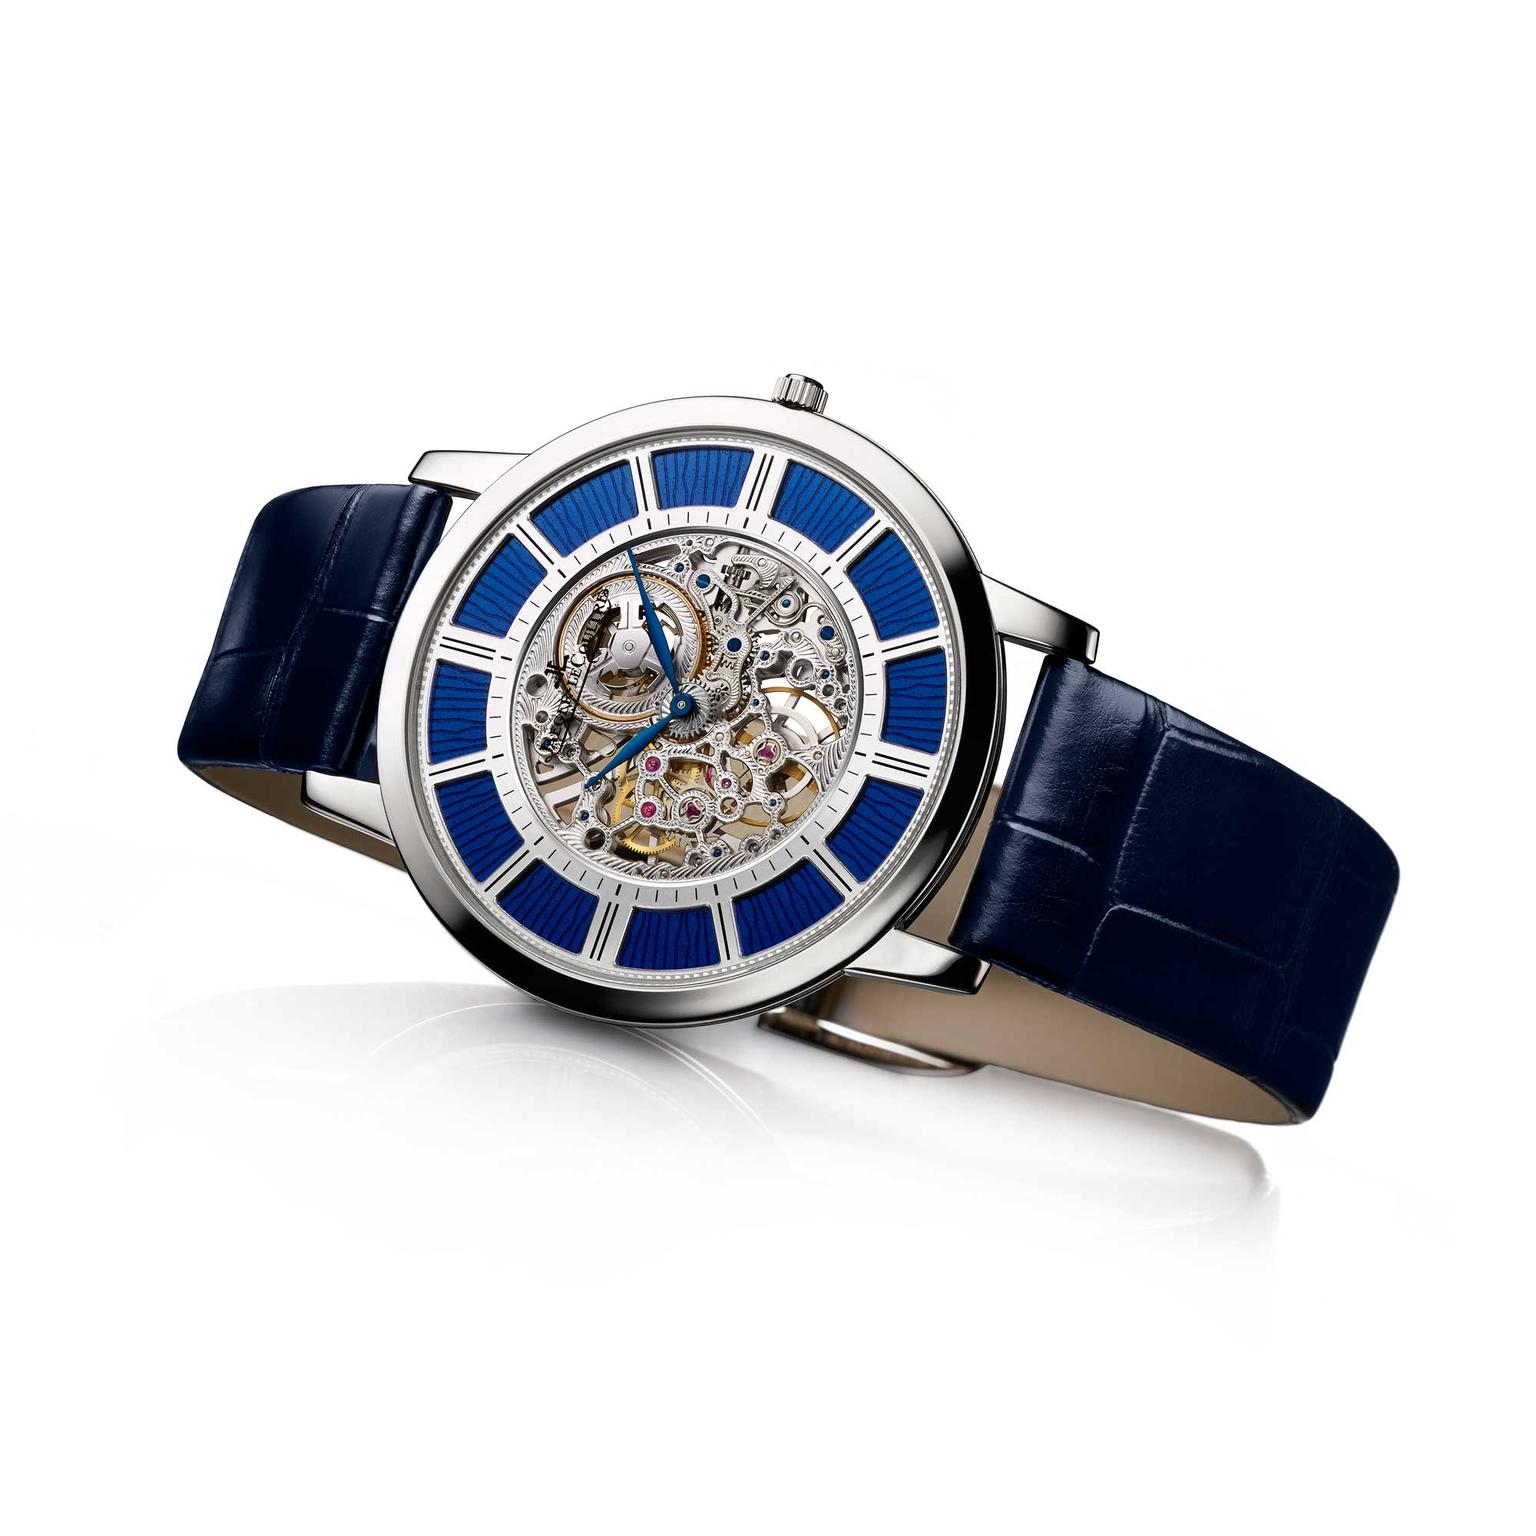 Jaeger-LeCoultre Master Ultra-Thin Squelette blue enamel watch